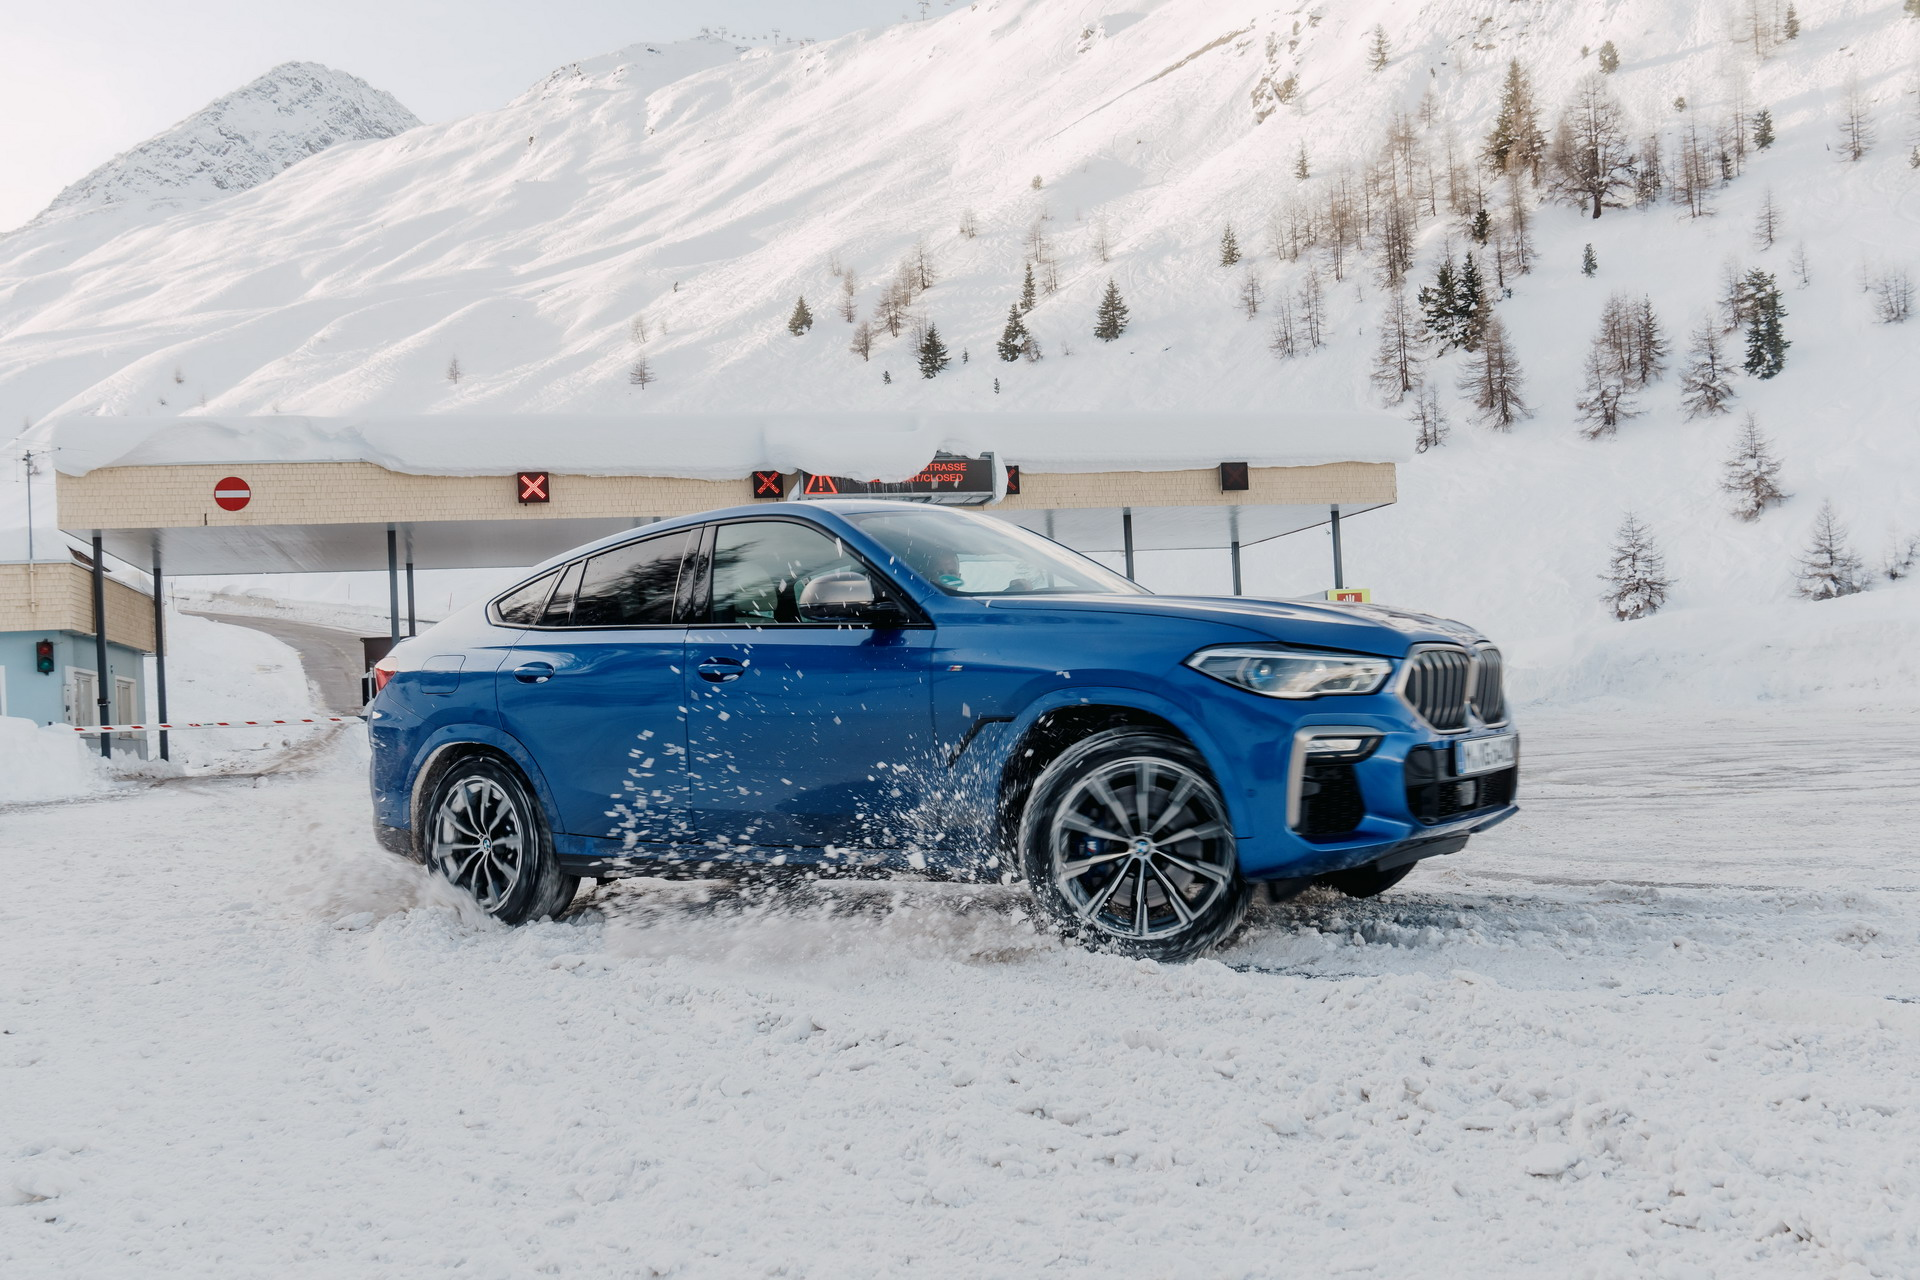 The new X6 and 8 Series Gran Coupe in Solden 18